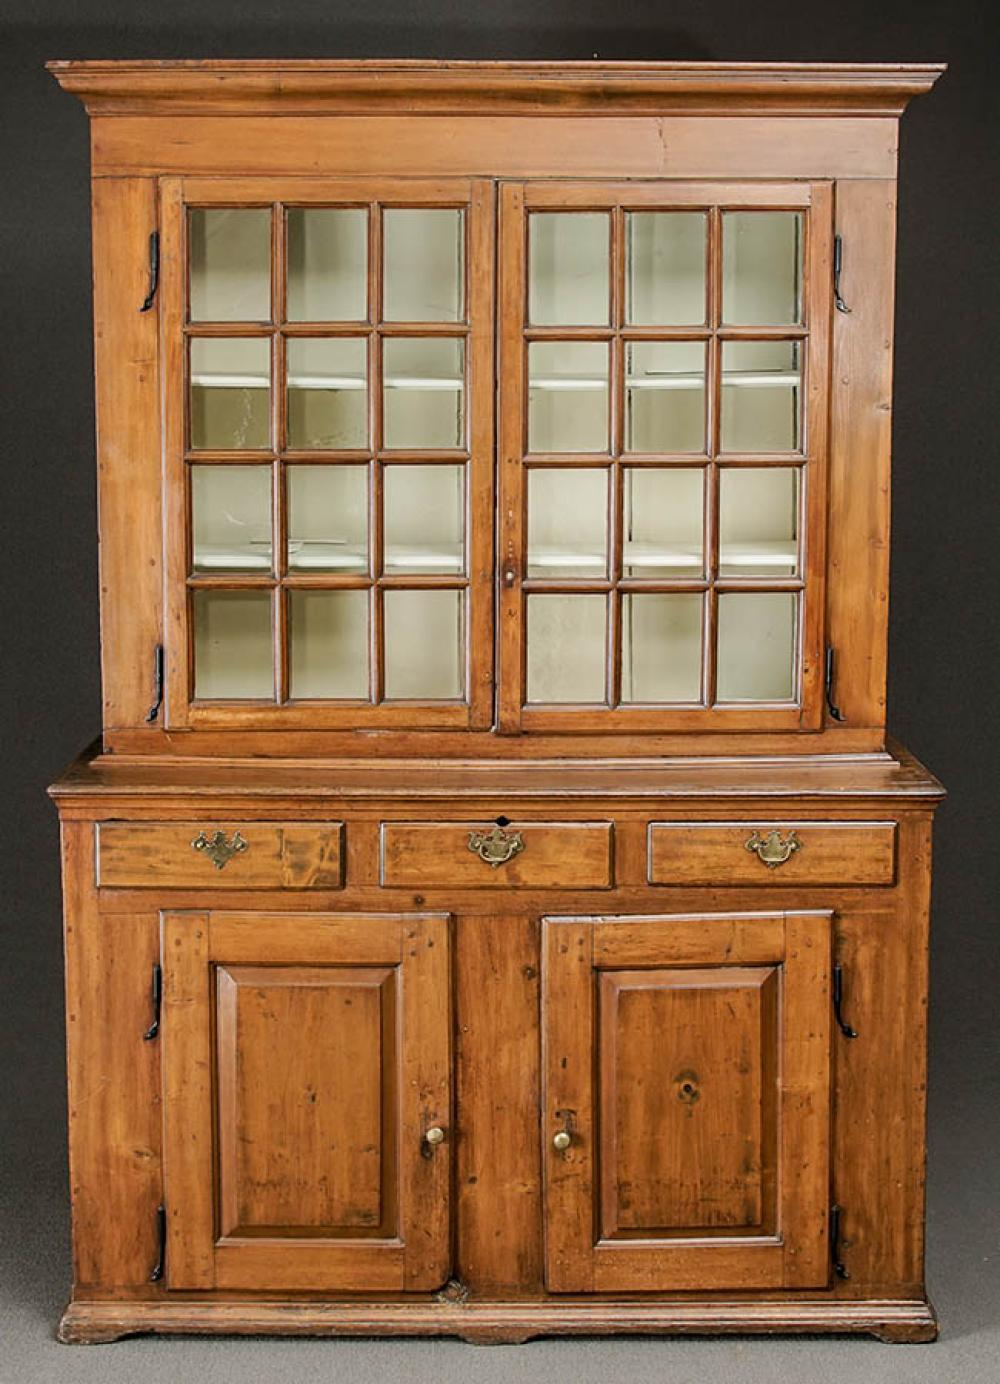 Chippendale Cherry Step-Back Cupboard, Probably Pennsylvania, Circa 1800